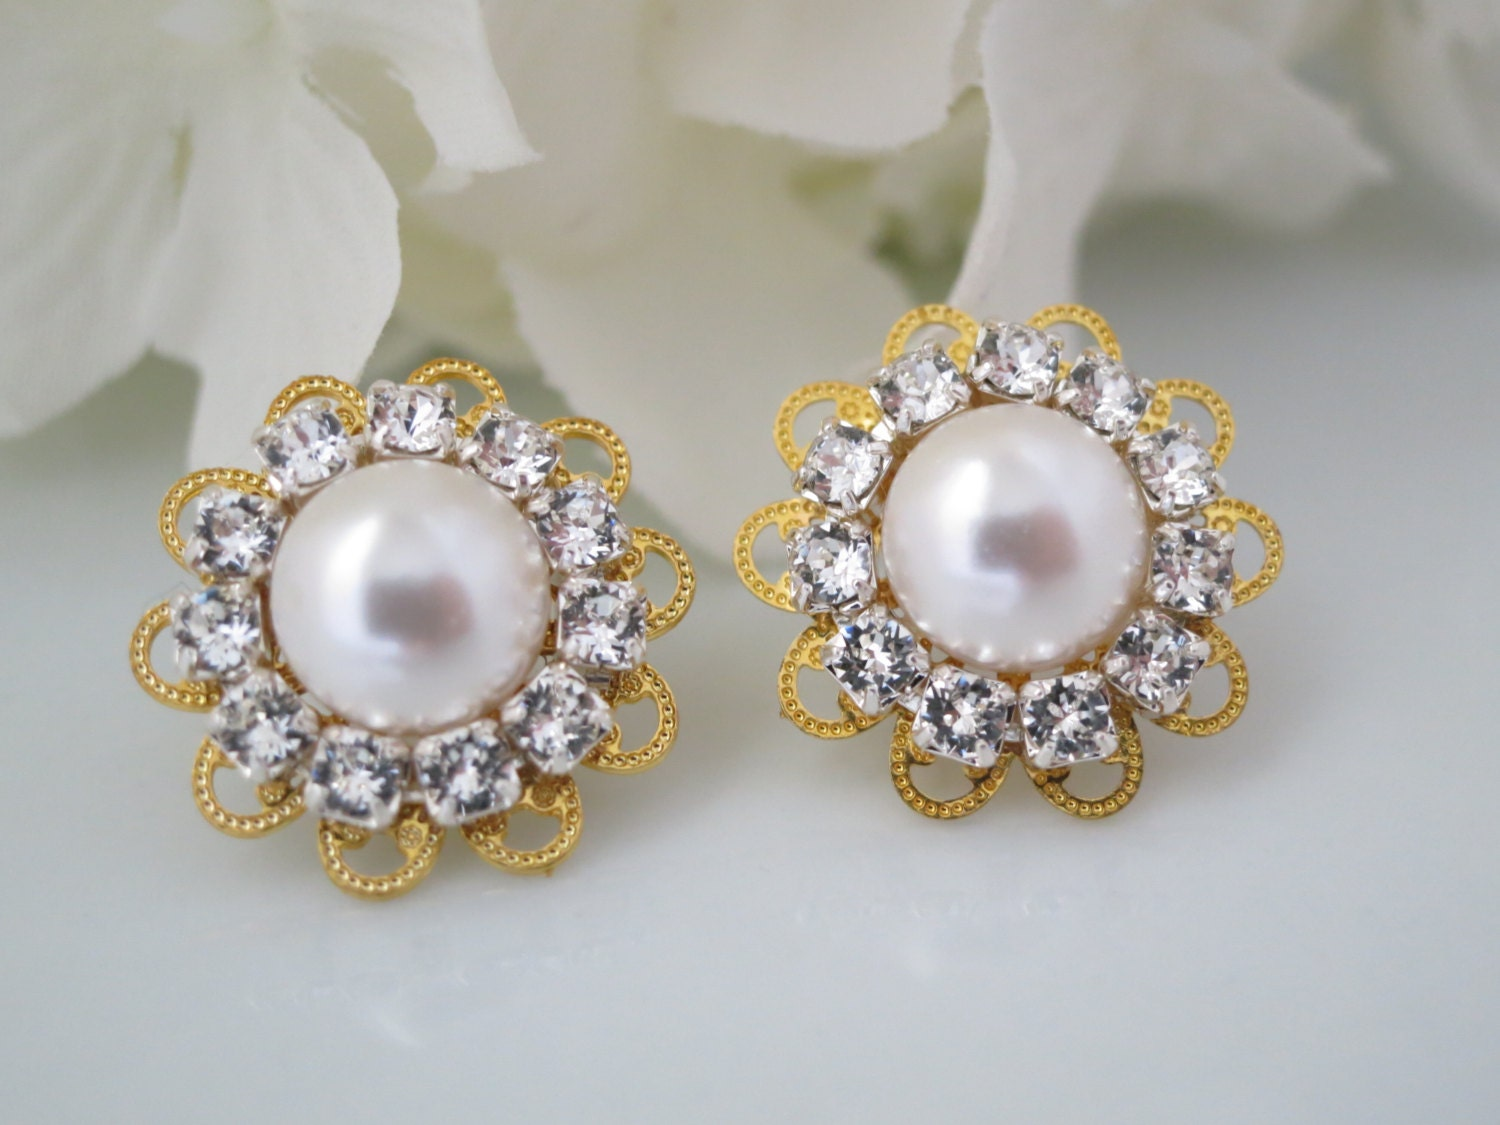 Gold filigree bridal post earring, Swarovski rhinestone and pearl earring, Vintage style earring, Bridesmaid earring